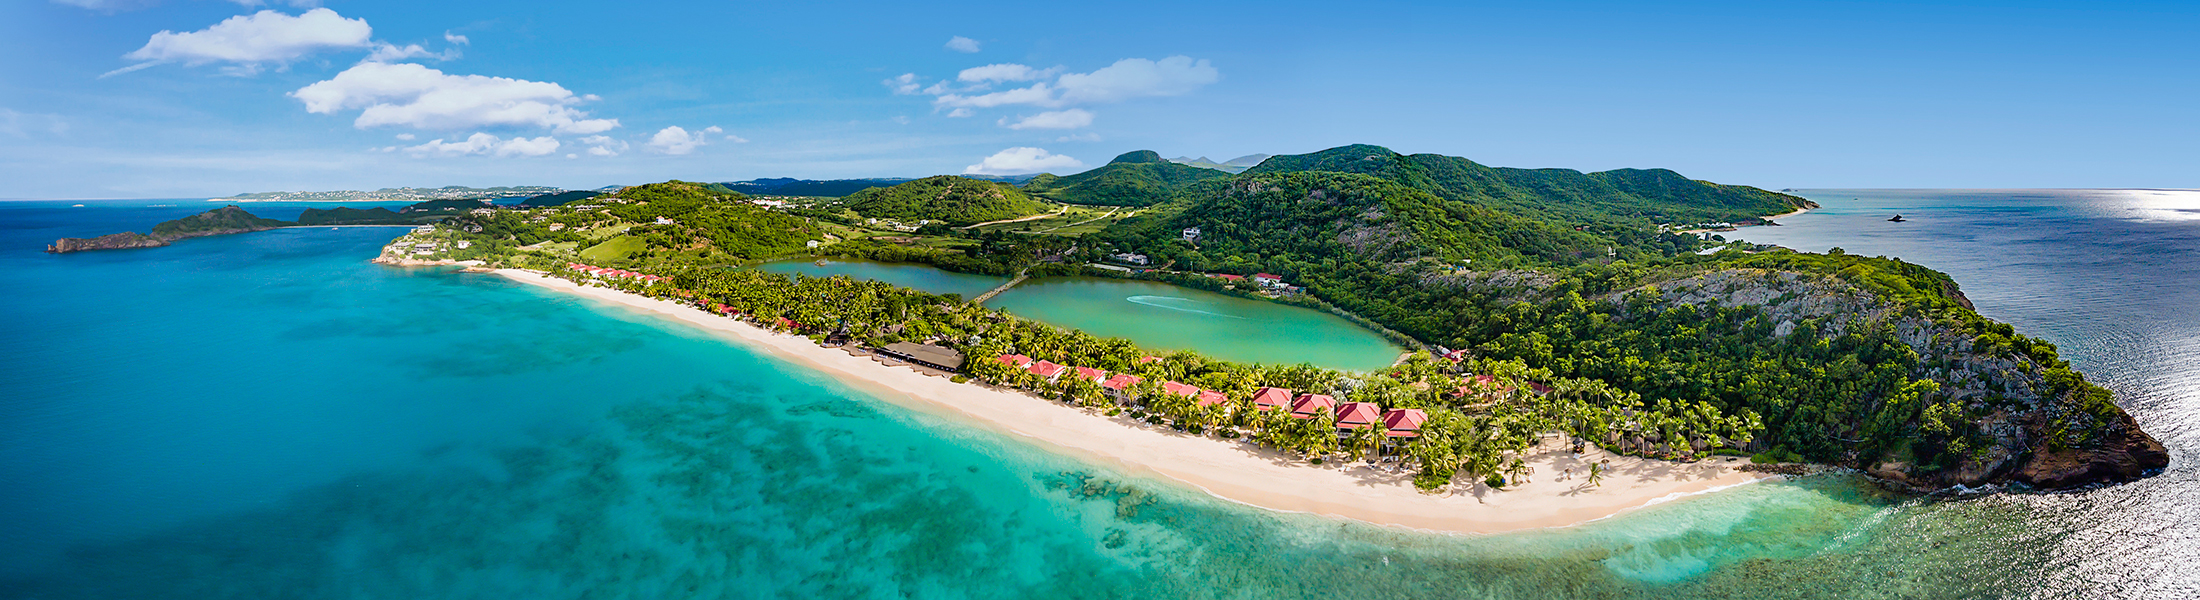 Aerial view of Galley Bay Resort & Spa